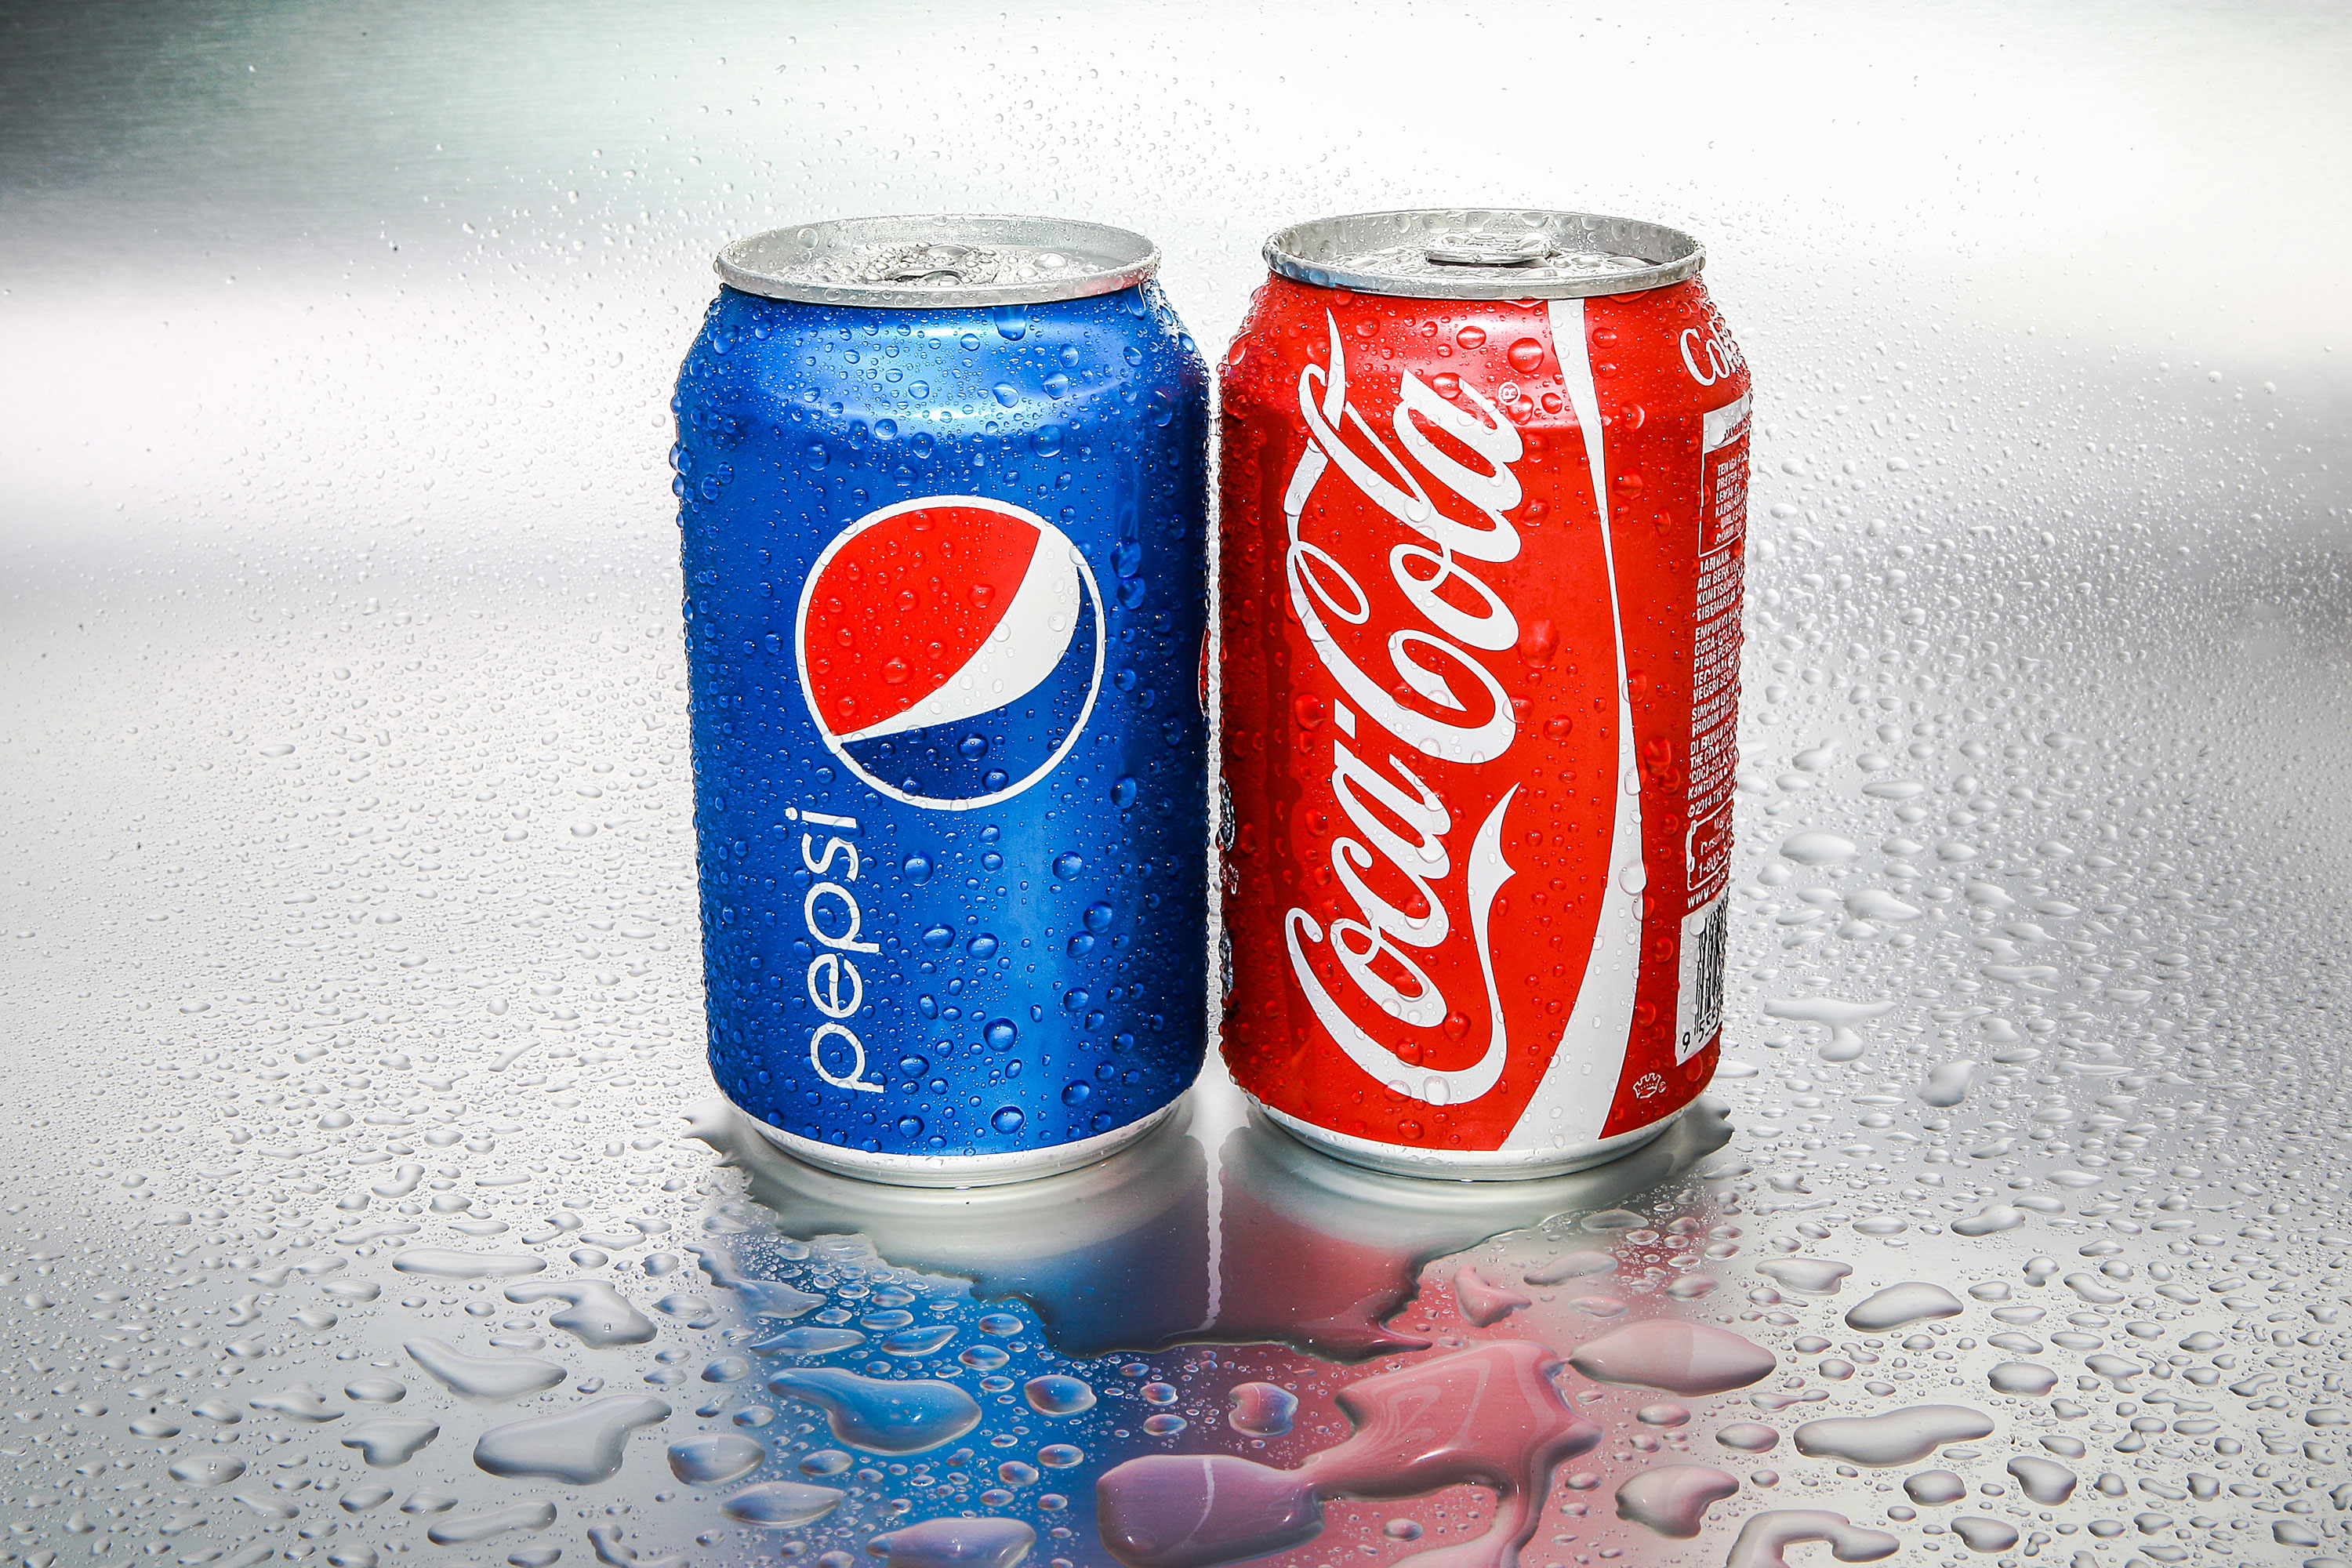 case study for coca cola vs pepsico Coke vs pepsi case study solution on cola wars discusses about the market competition between the top most soda companies of coca cola and pepsi.